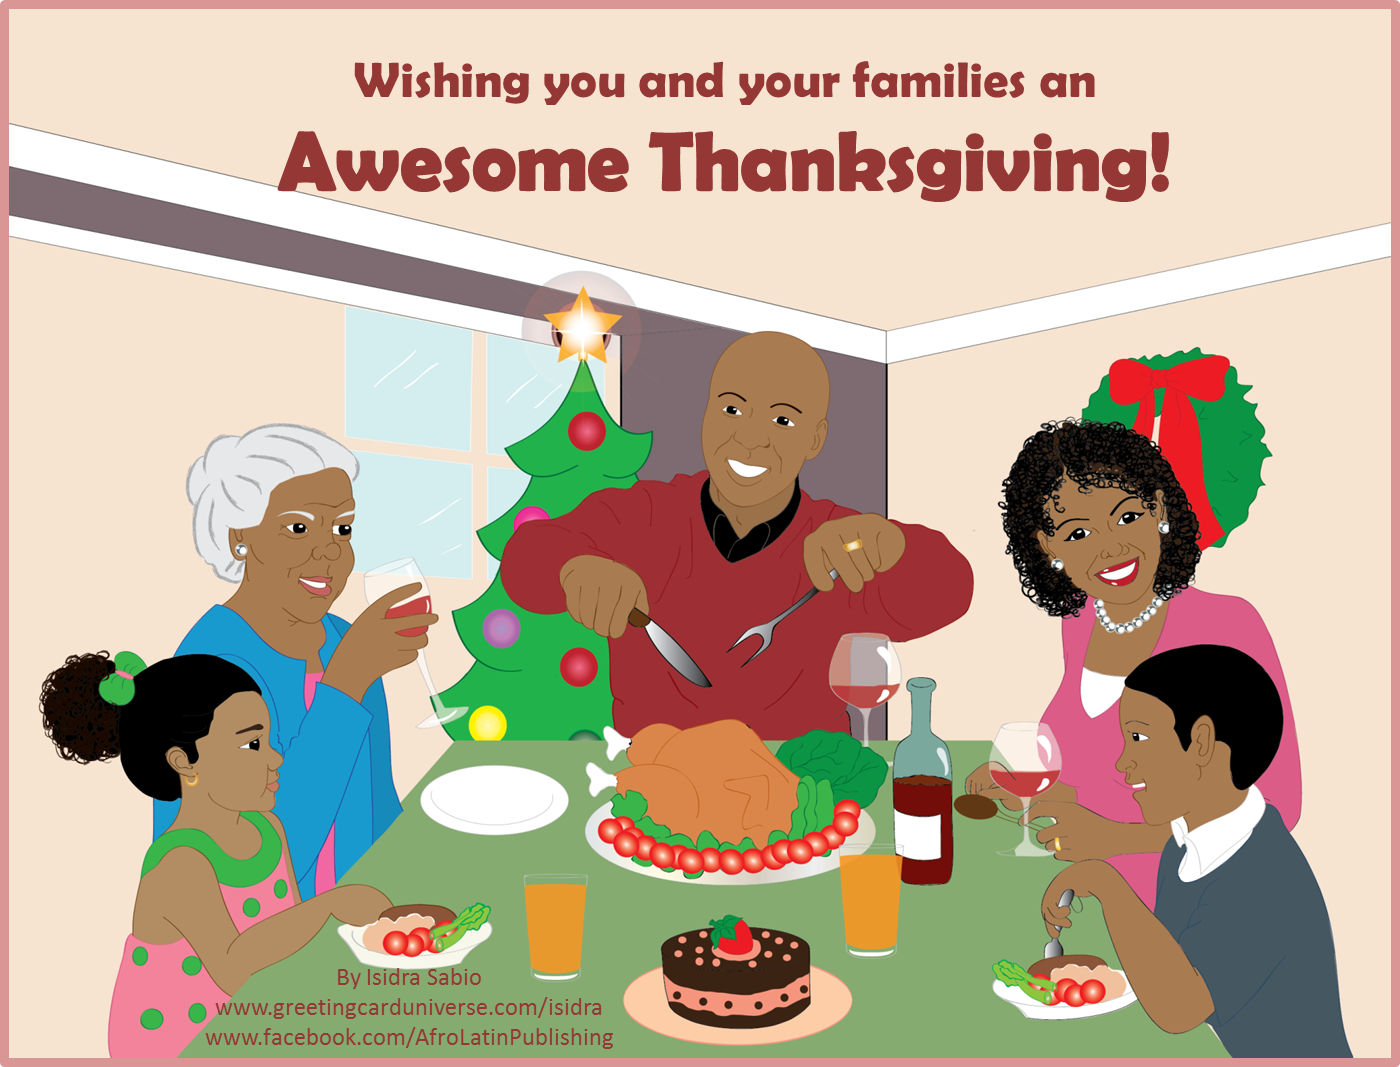 Wishing you and your family a Happy Thanksgiving! #Family.